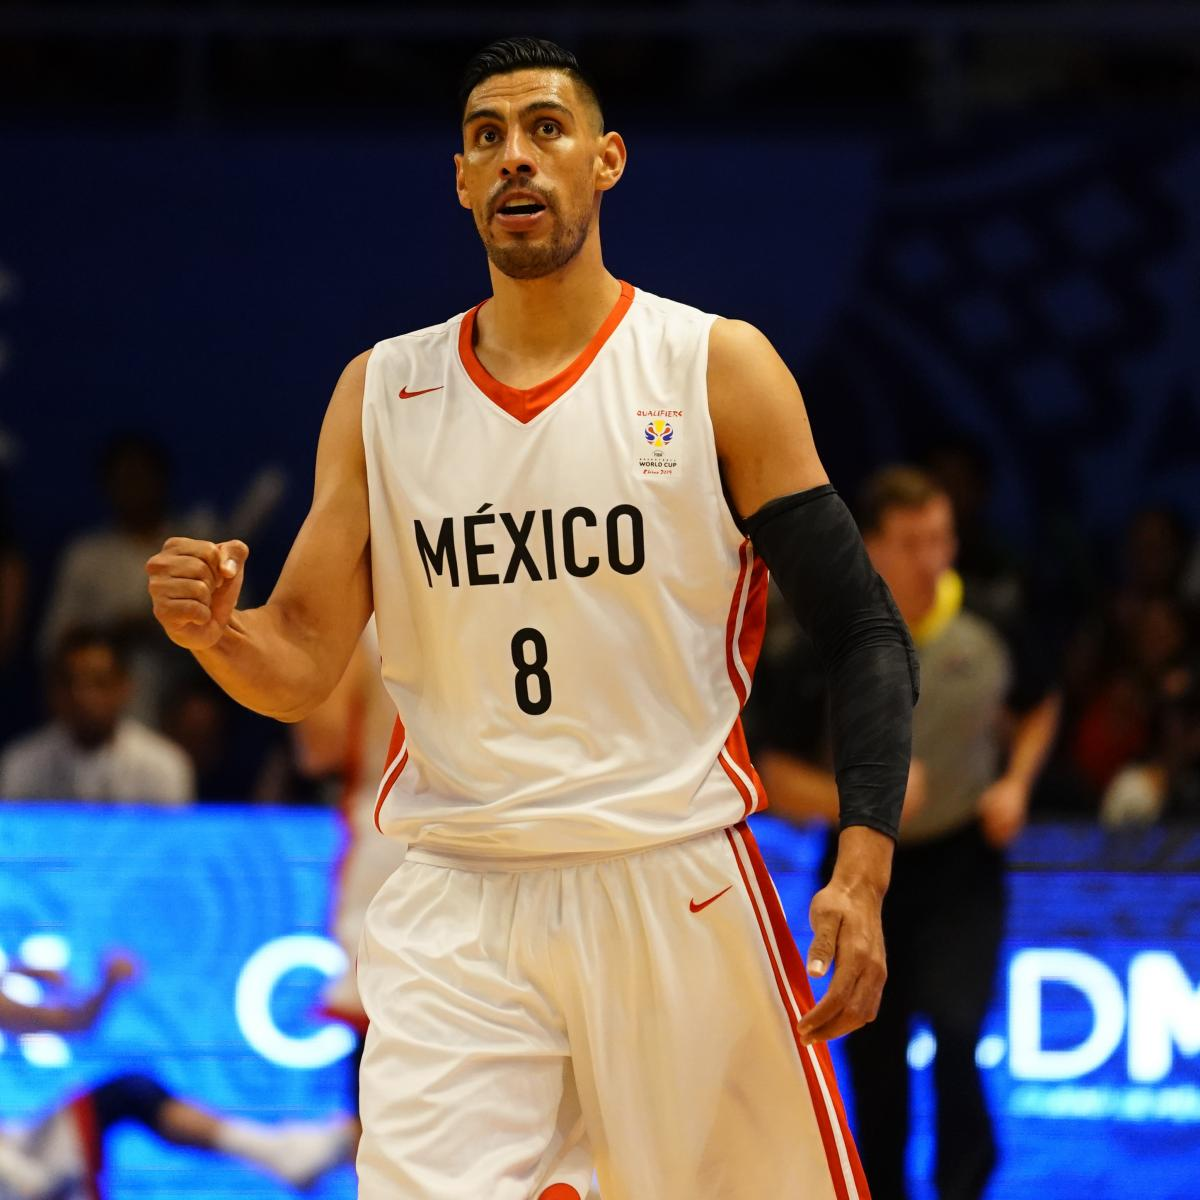 USA Basketball Upset 78-70 by Mexico in 2018 FIBA Americas World Cup Qualifier